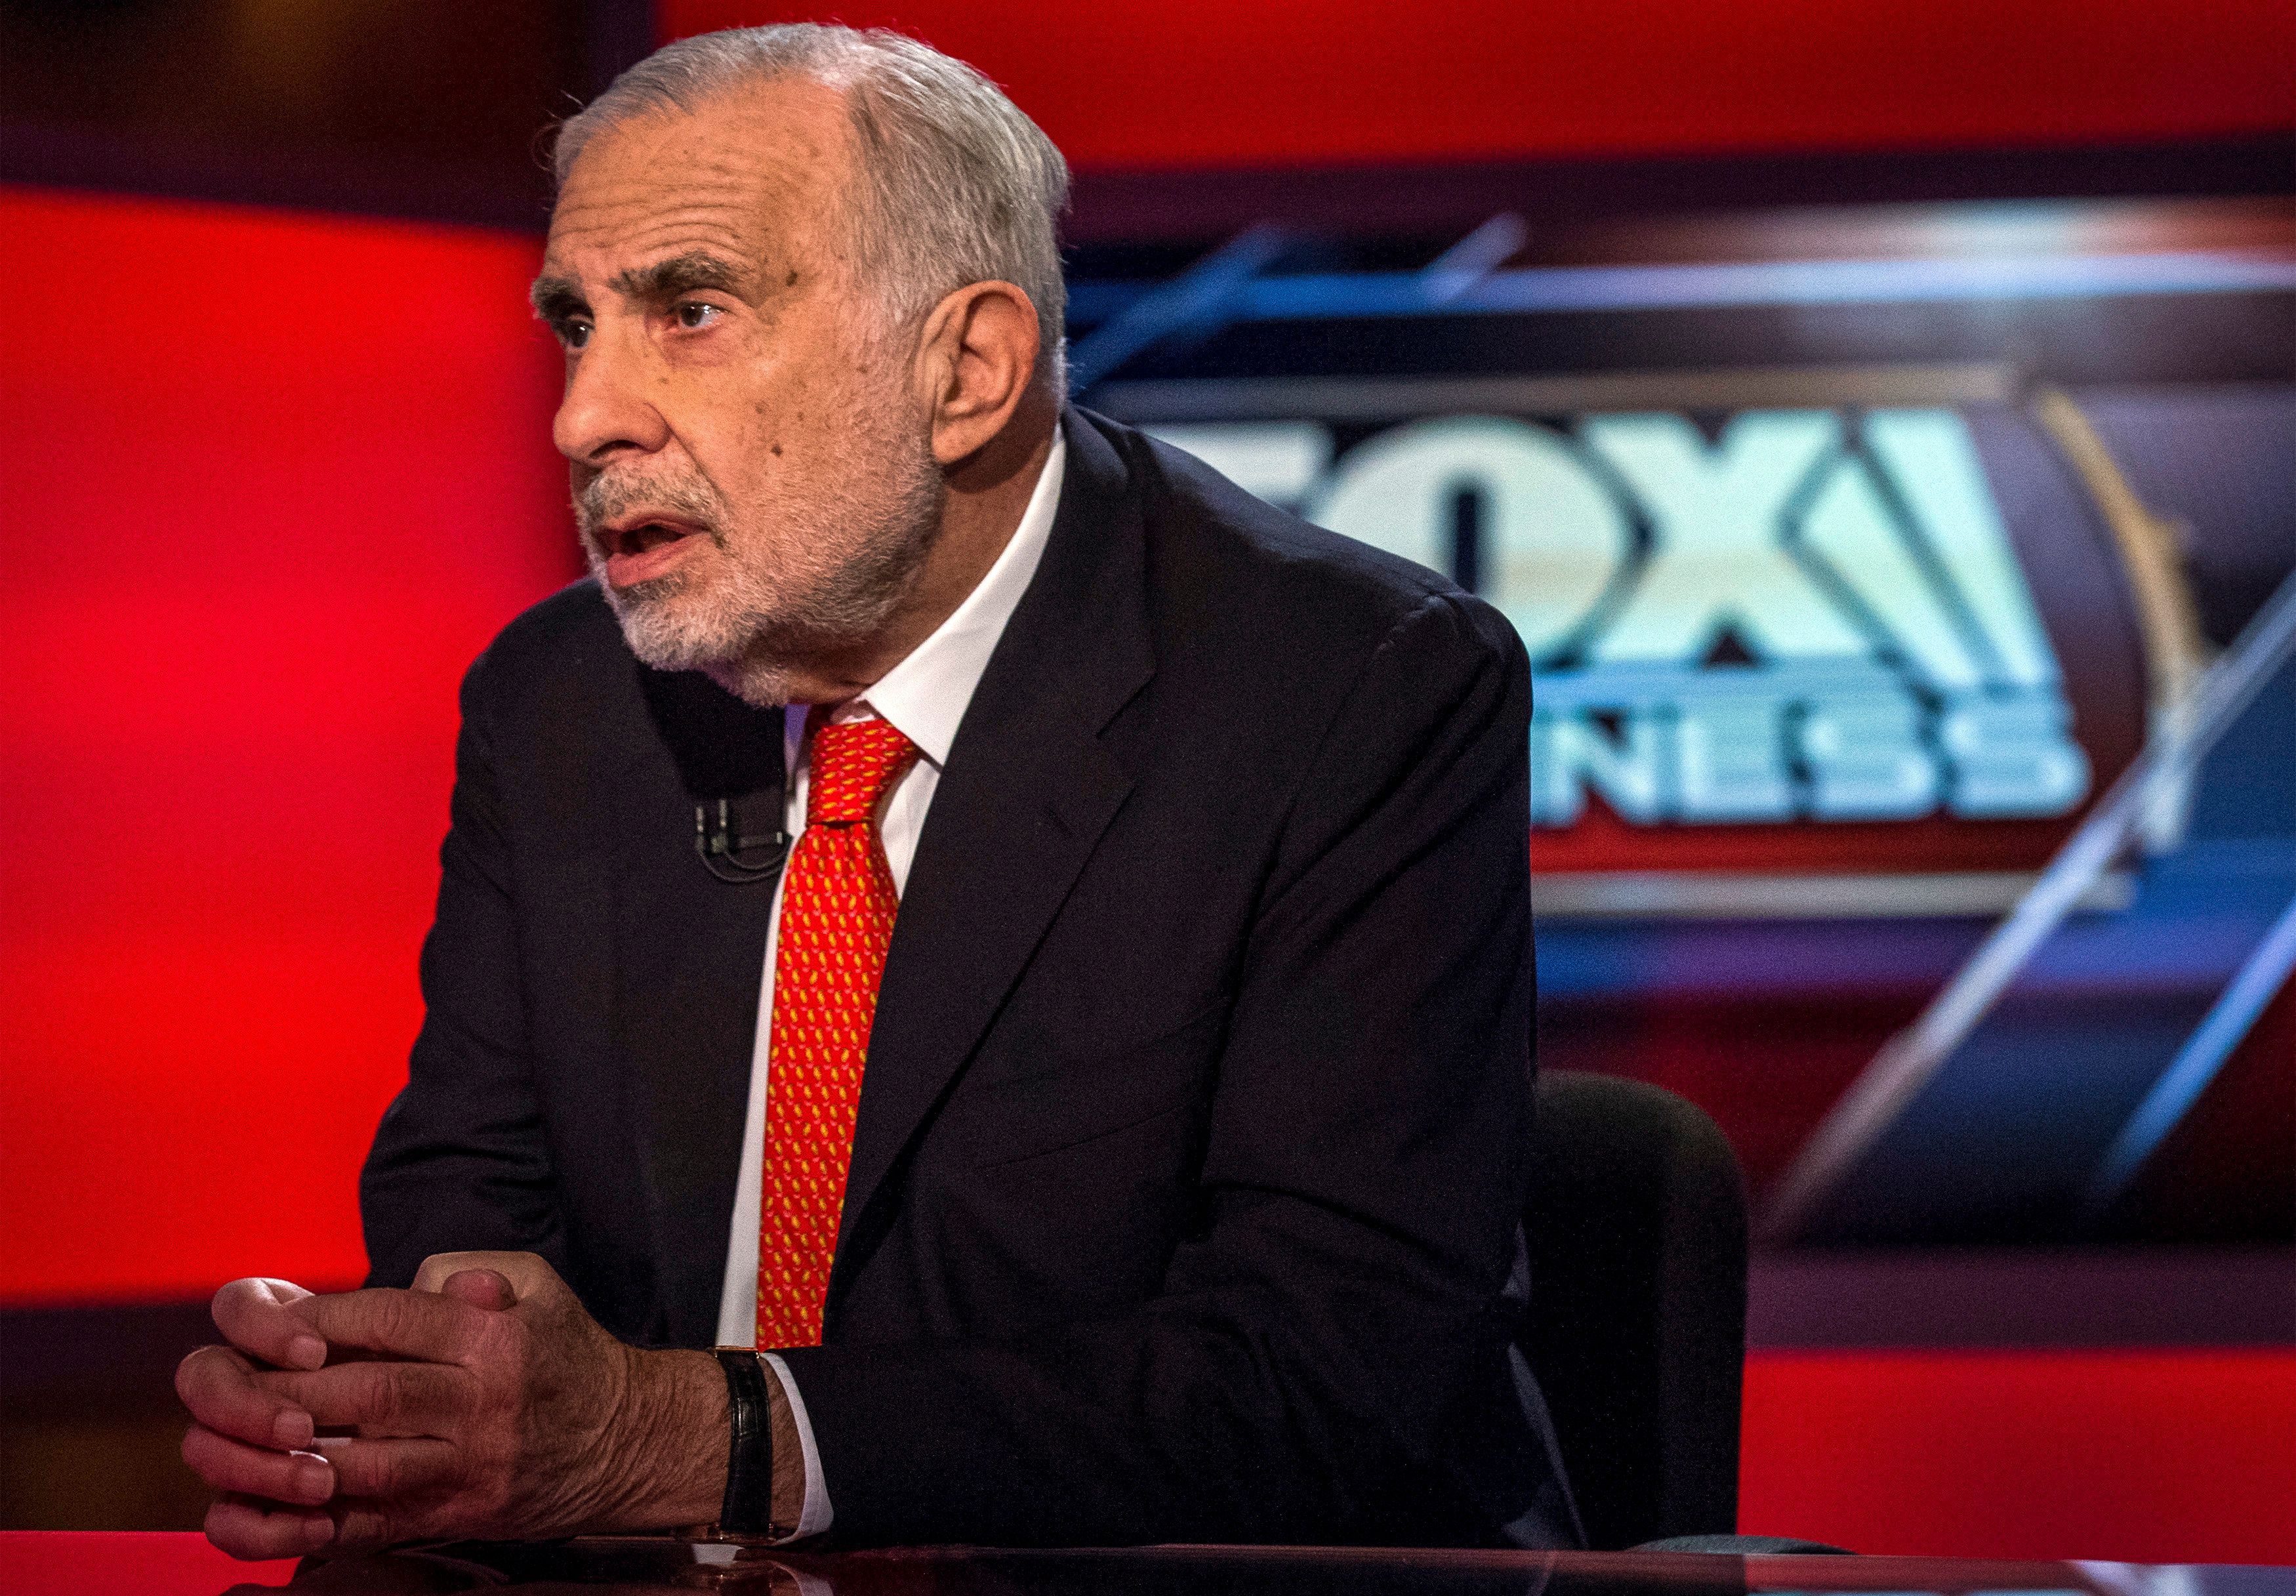 Billionaire activist-investor Carl Icahn gives an interview on FOX Business Network's Neil Cavuto show in New York February 11, 2014.  Icahn has backed off from his campaign urging Apple to increase its stock buybacks, citing the company's recent repurchases as well as an influential proxy adviser's call against his proposal.   REUTERS/Brendan McDermid (UNITED STATES - Tags: BUSINESS MEDIA)